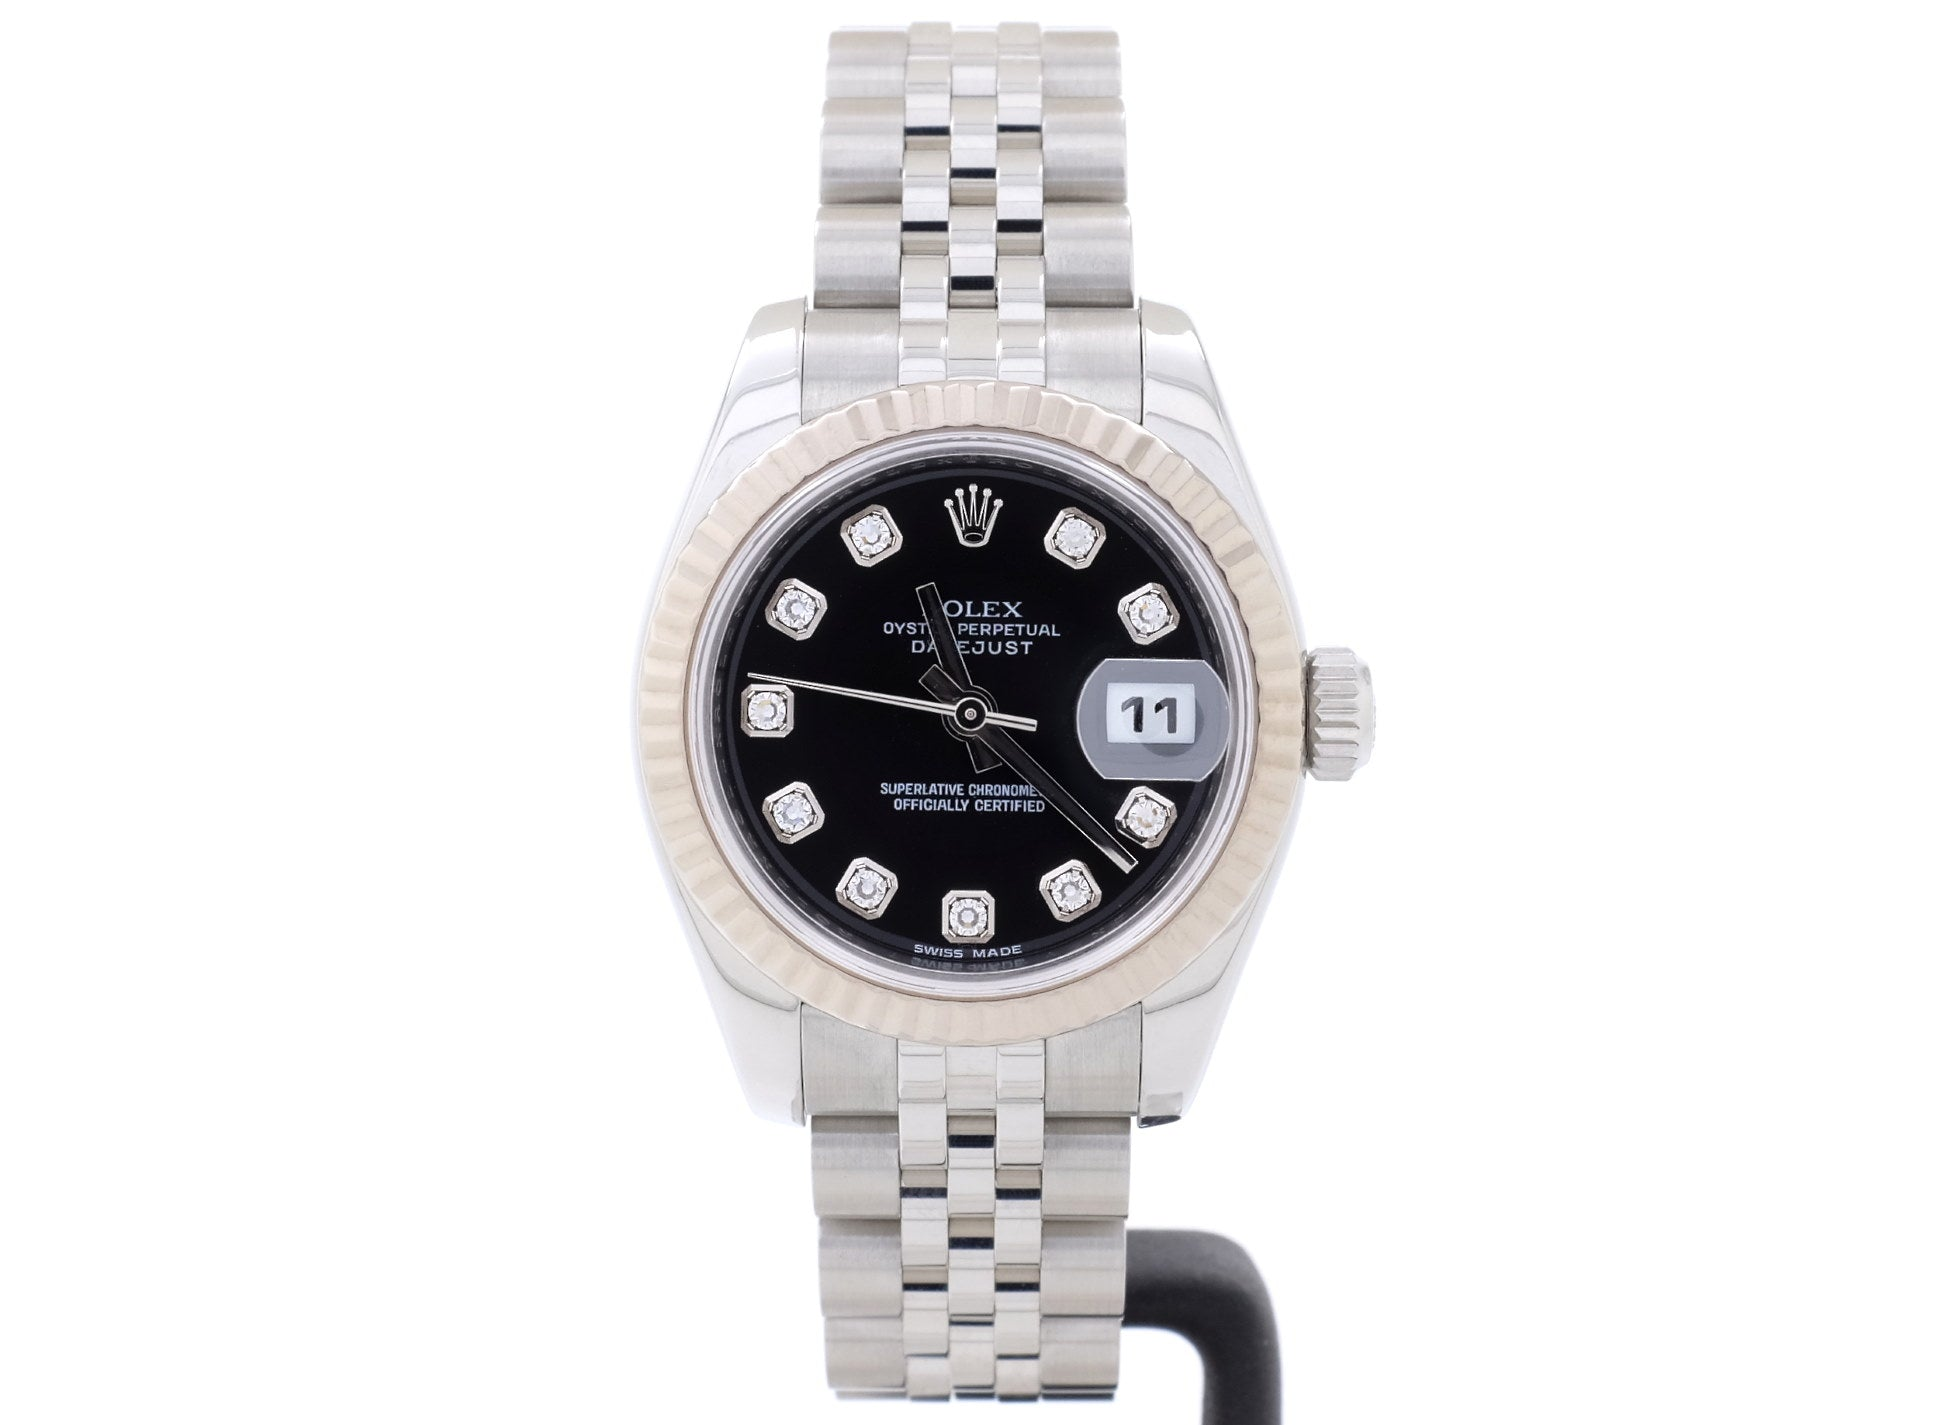 Excellent Condition 26mm Rolex Lady-Datejust 179174 with Original Diamond-Dot Dial